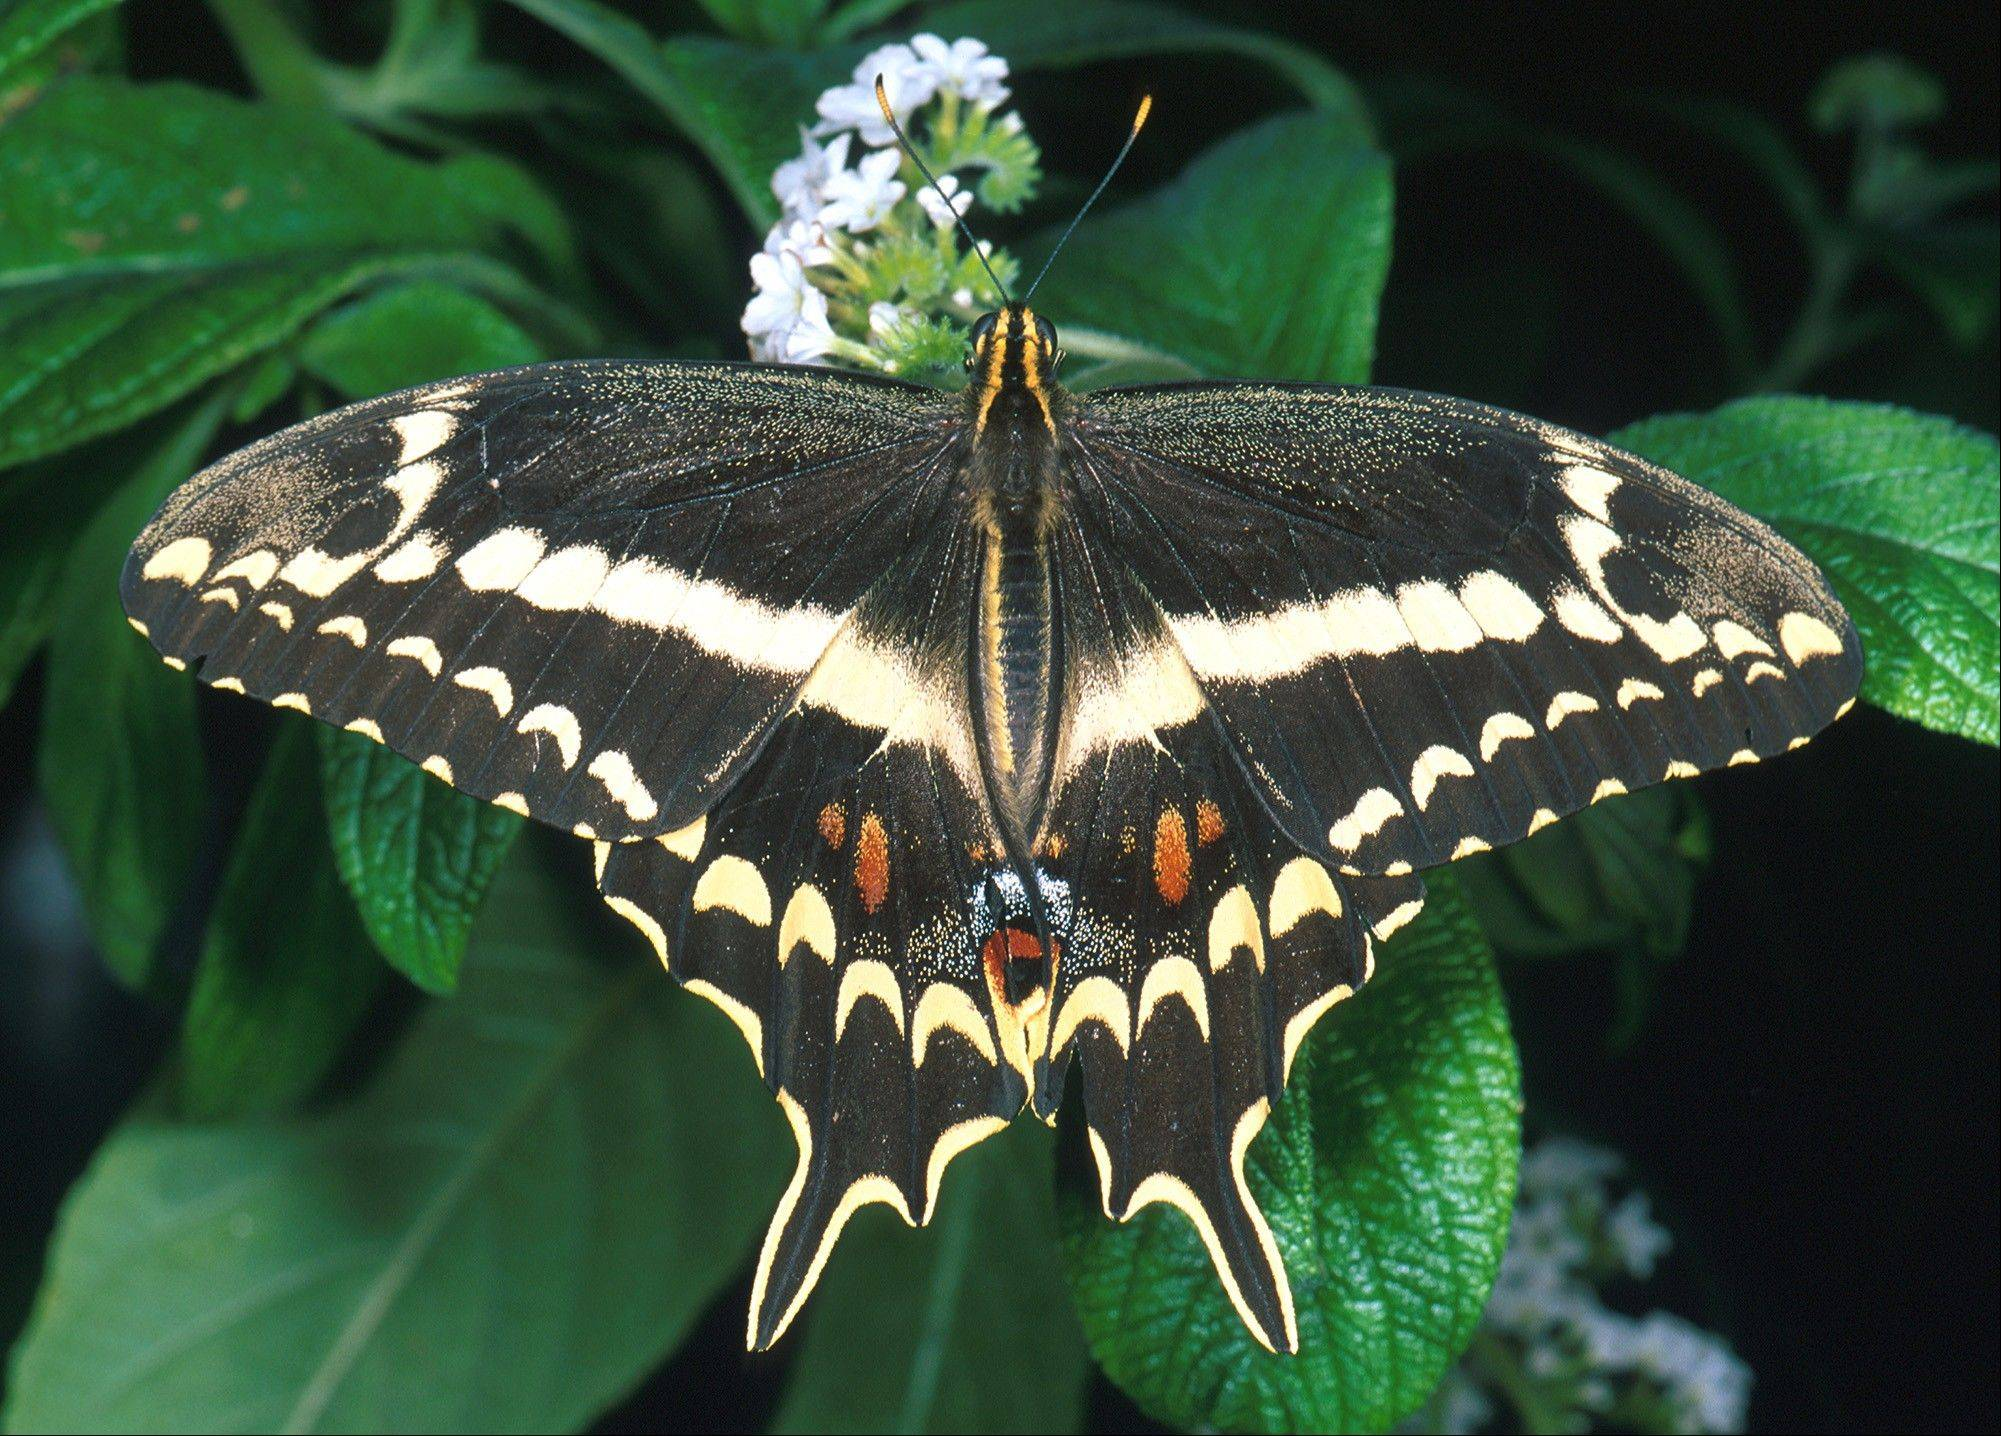 The U.S. Fish and Wildlife Service recently announced that two brown, moth-like butterfly subspecies are likely extinct in south Florida, which some entomologists say is ground zero for the number of butterfly species on the verge of annihilation. At least one species of butterfly has vanished from the United States, along with the two subspecies in Florida. Seventeen species and subspecies are listed as endangered nationwide, and two are listed as threatened.